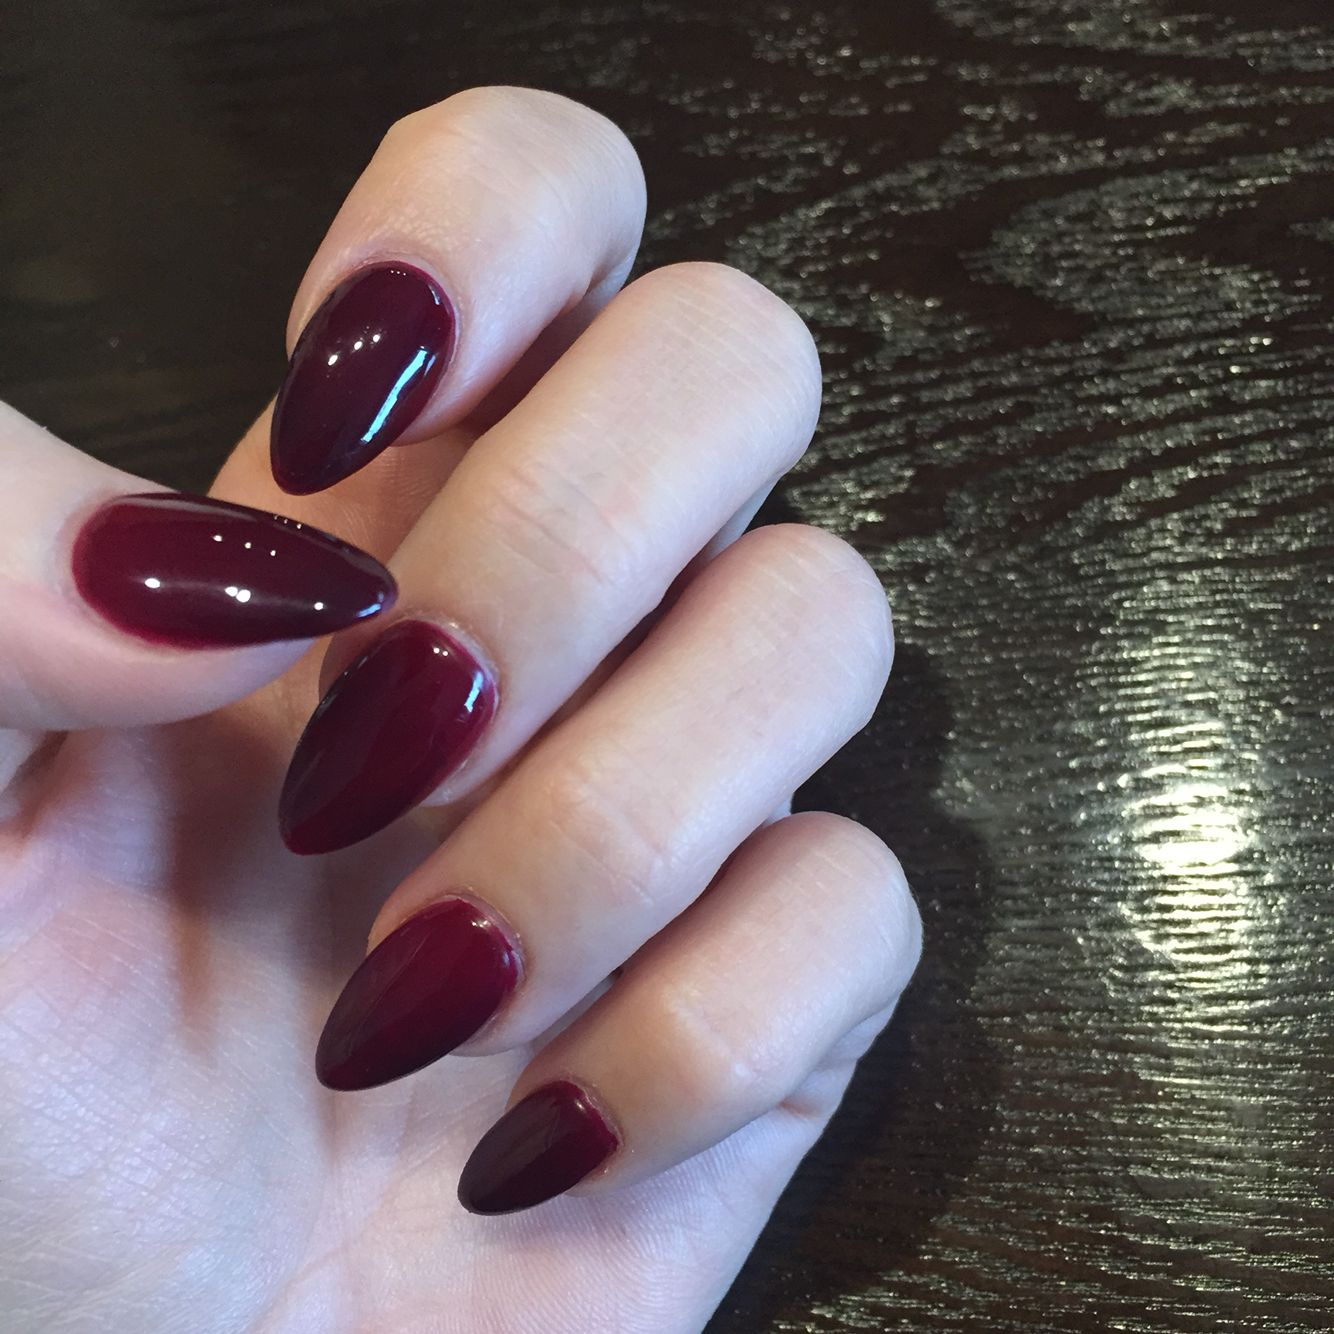 blackswanballet | Gel Nägel | Pinterest | Hot nails, Color shapes ...